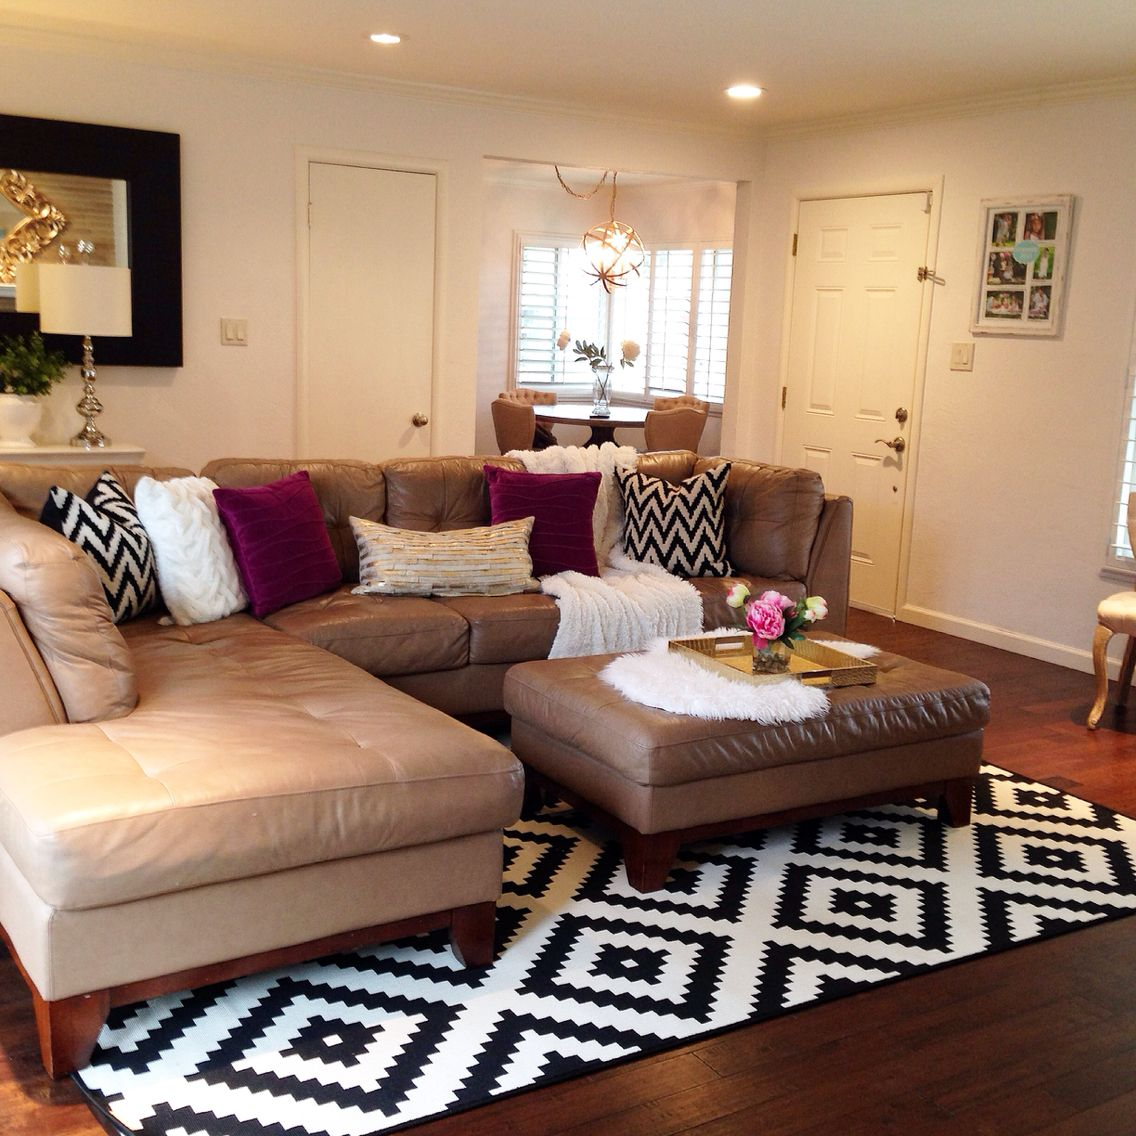 black and white area rug in the living room. pops of fuschia too